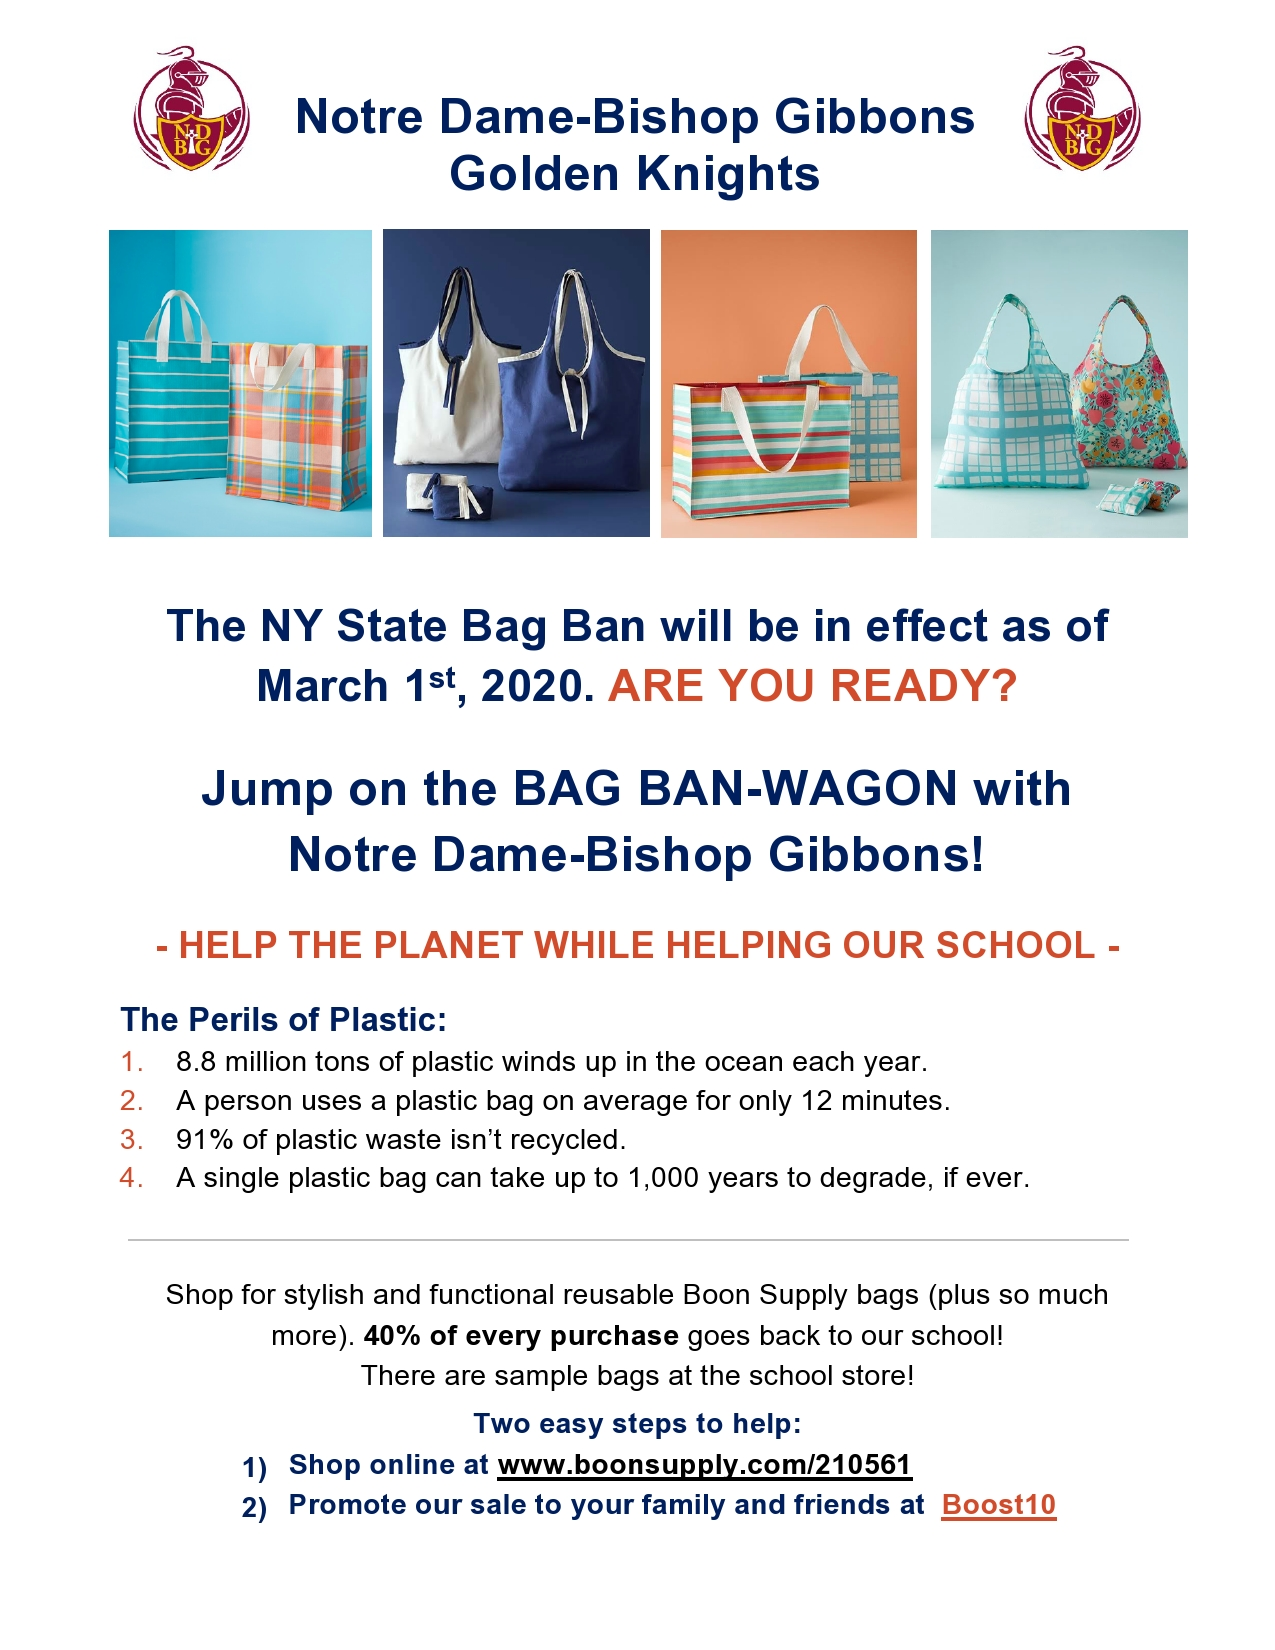 Boon Supply Bag Sale to Benefit ND-BG!